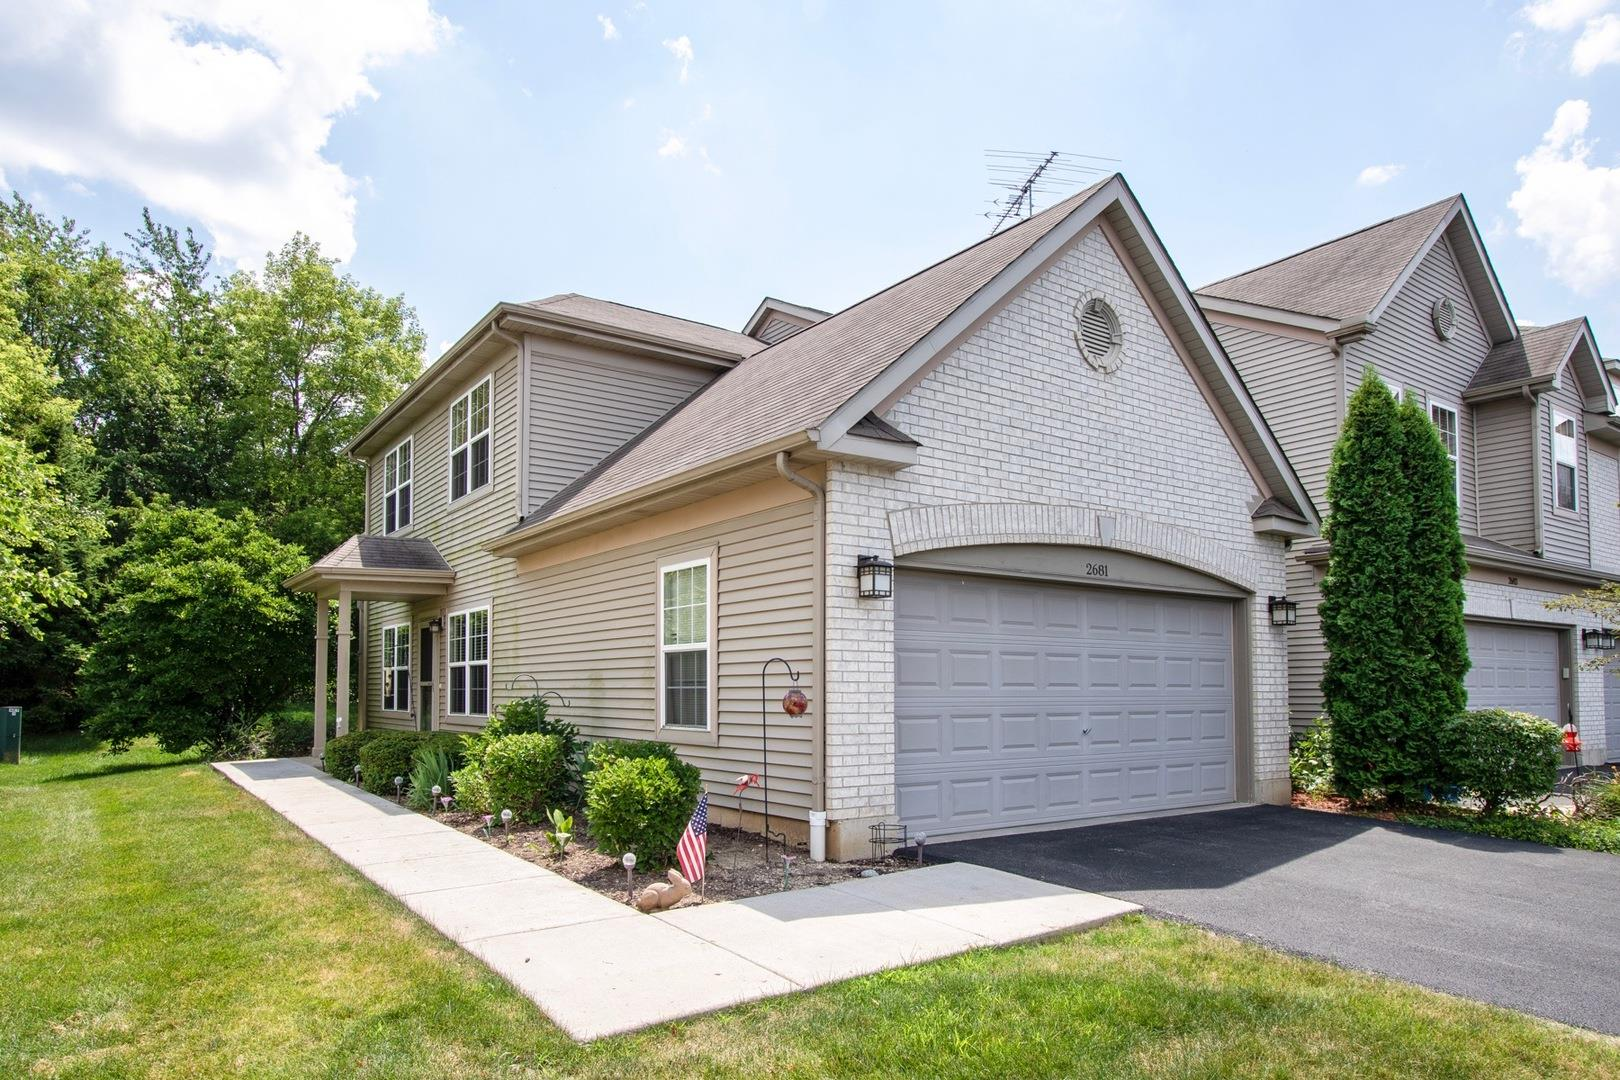 2681 Granite Court #42-2681-A, Crystal Lake, IL 60012 - #: 10773697